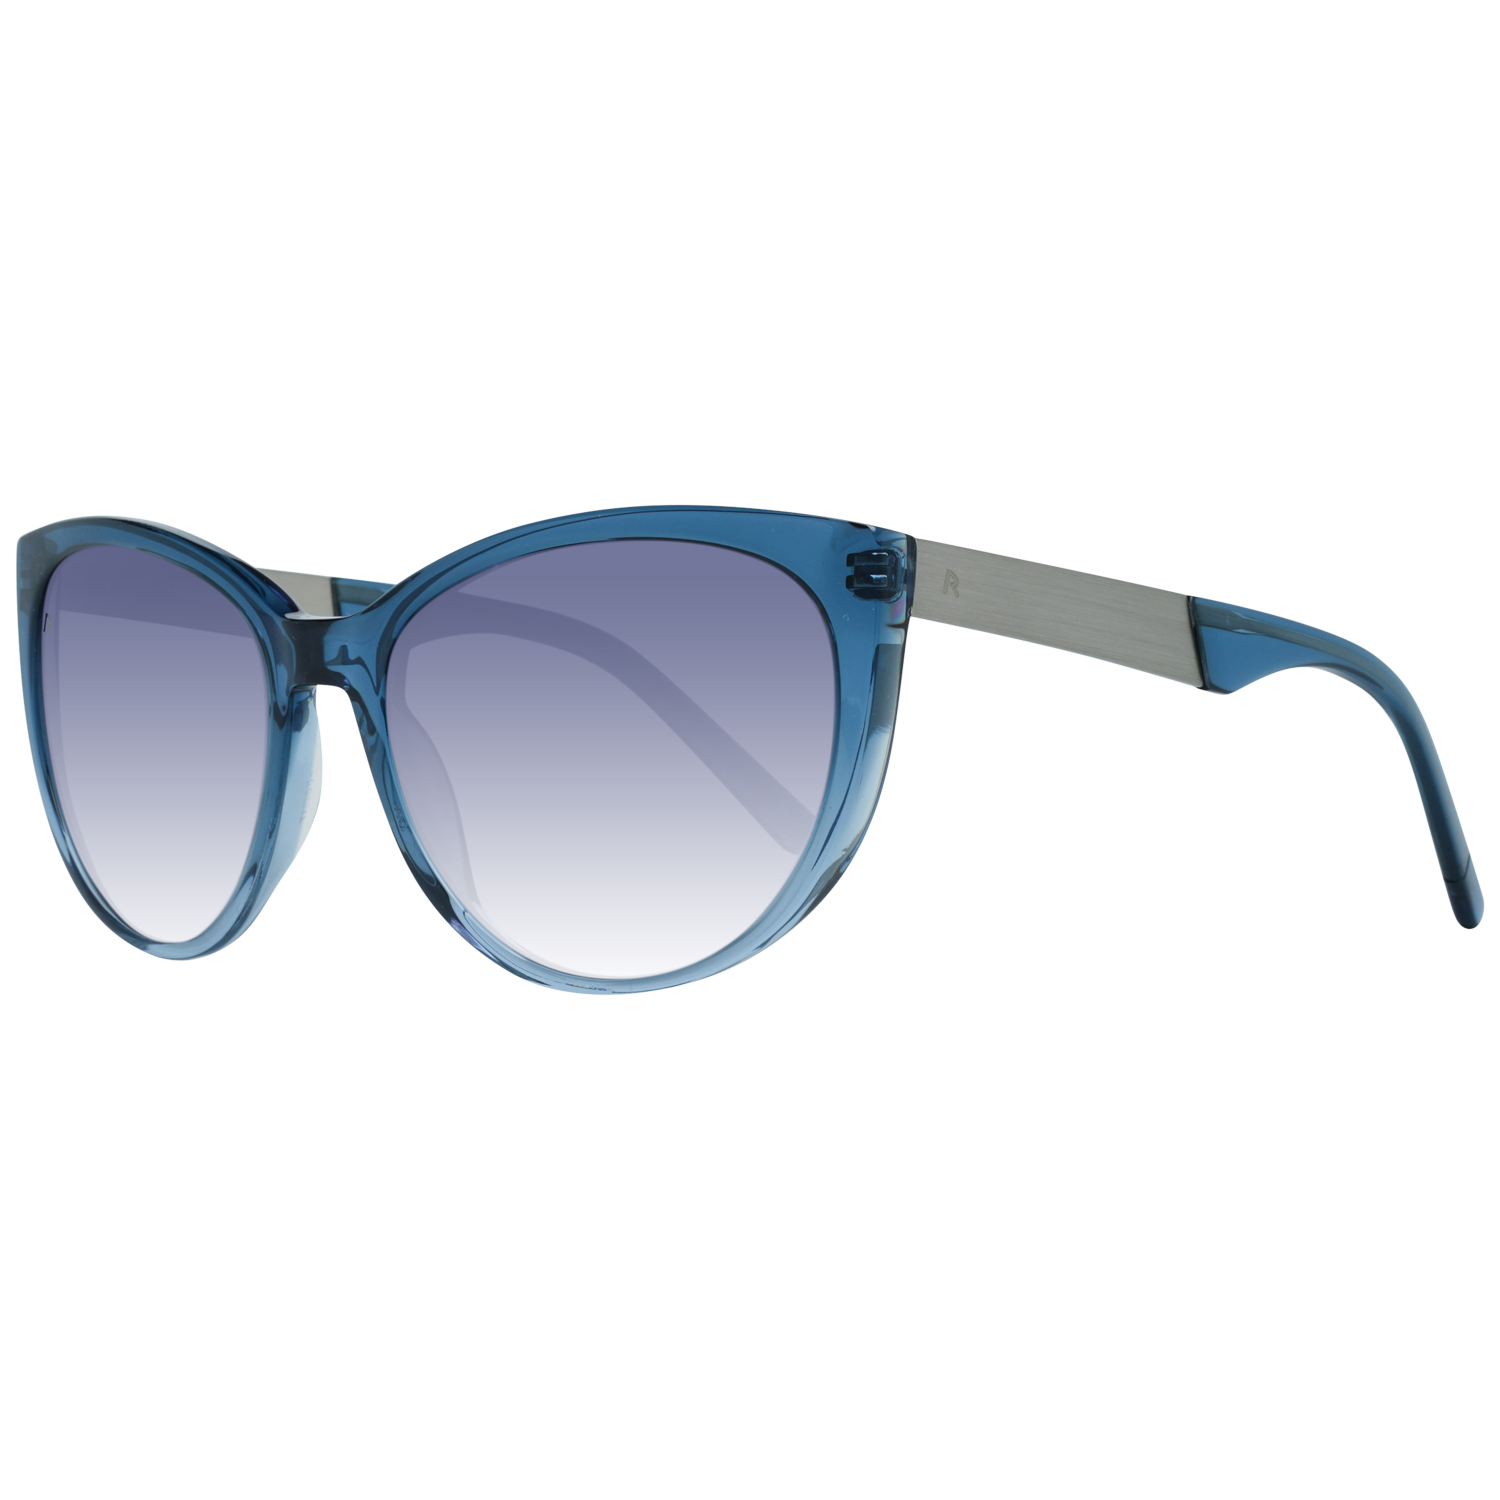 Rodenstock Sunglasses R3300 B 55 Blue